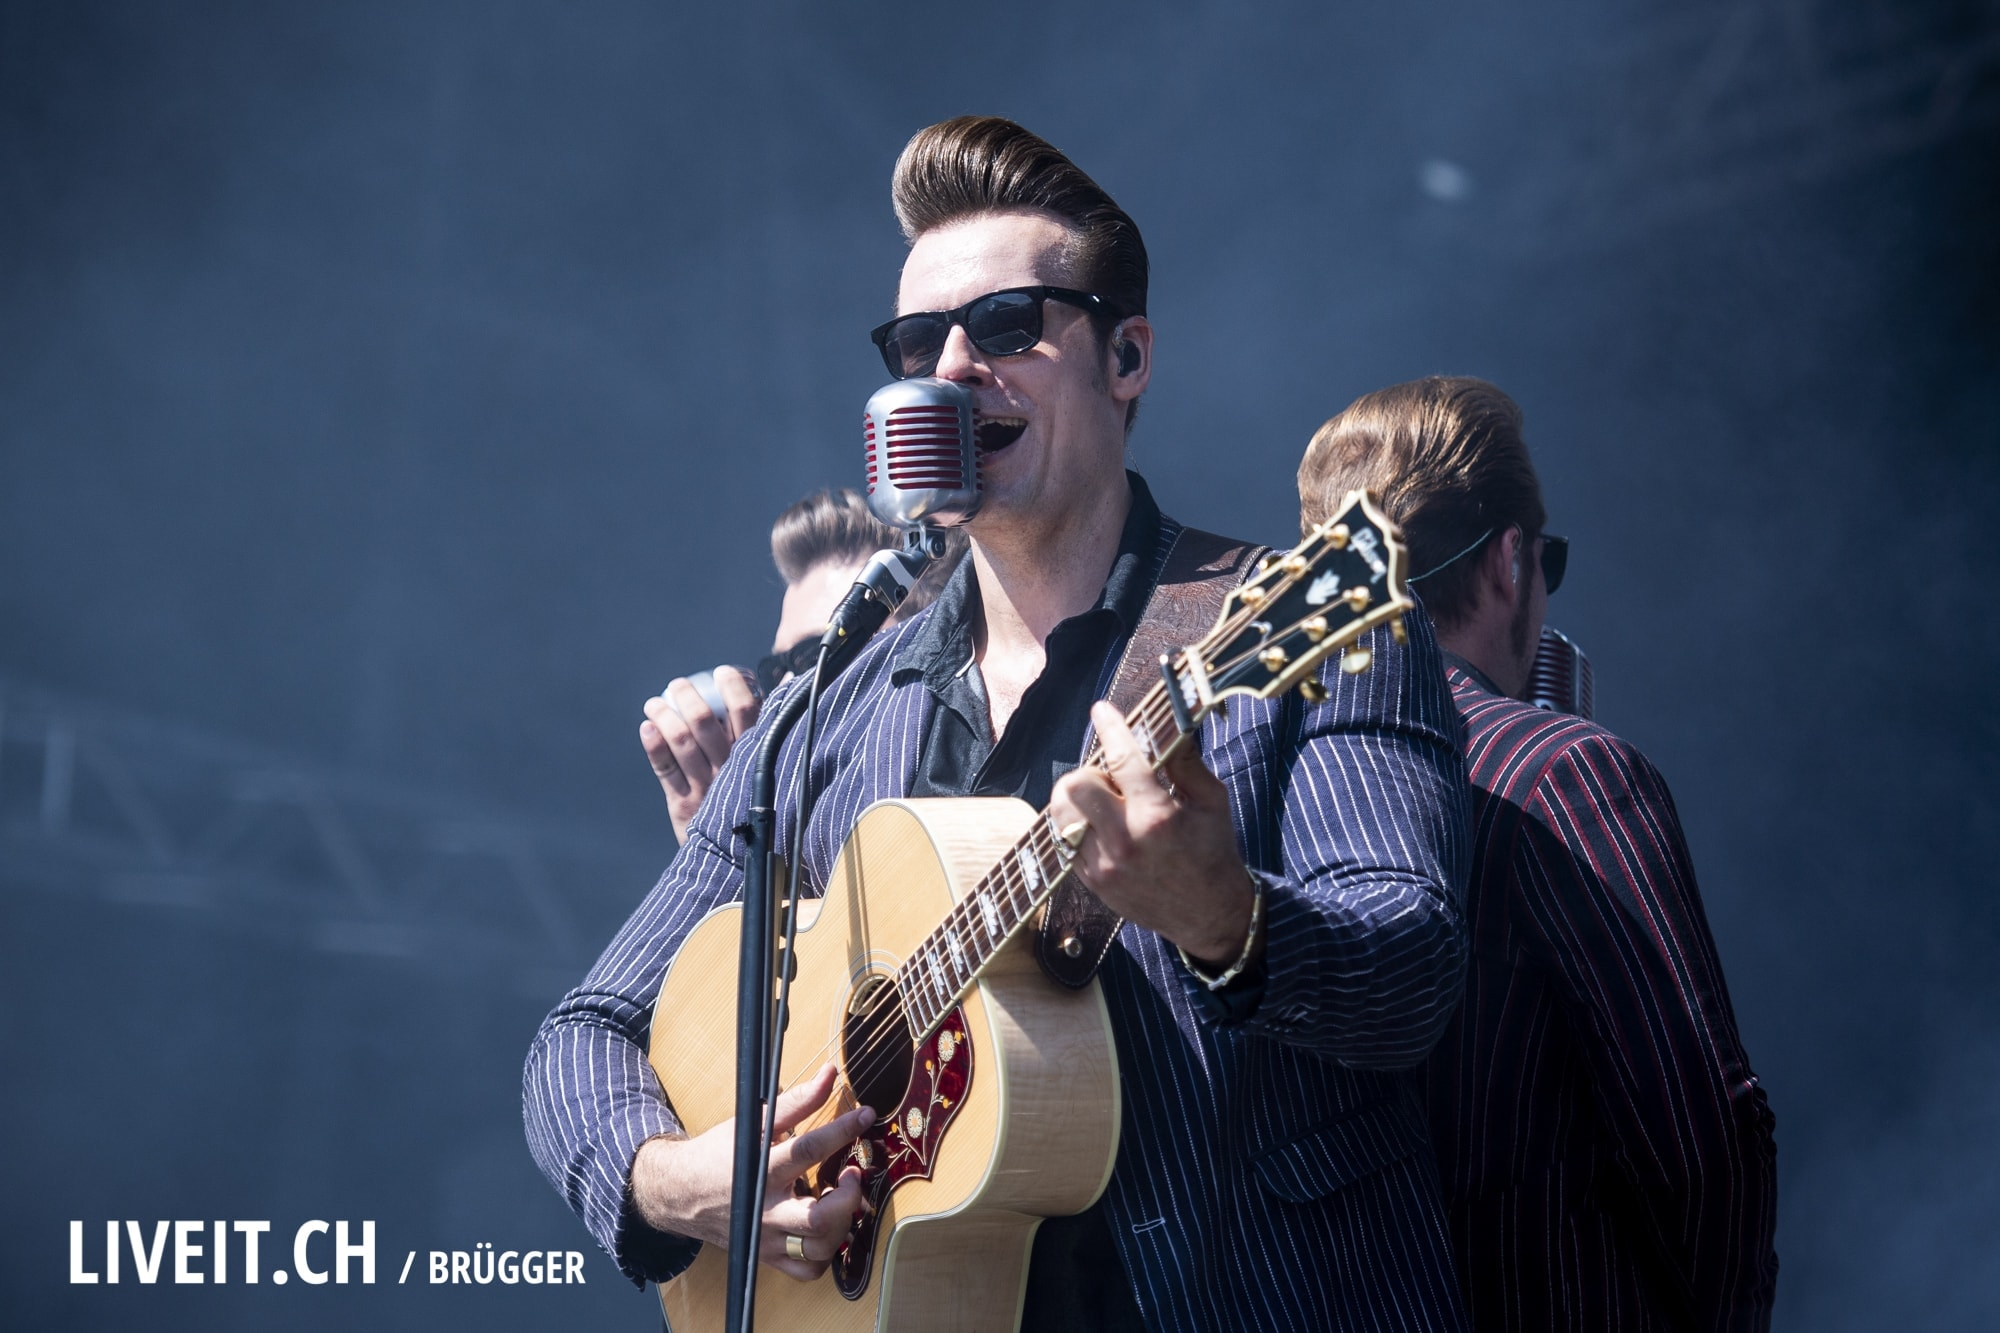 The Baseballs fotografiert am Openair Gampel 2018. (Dominic Bruegger for liveit.ch)